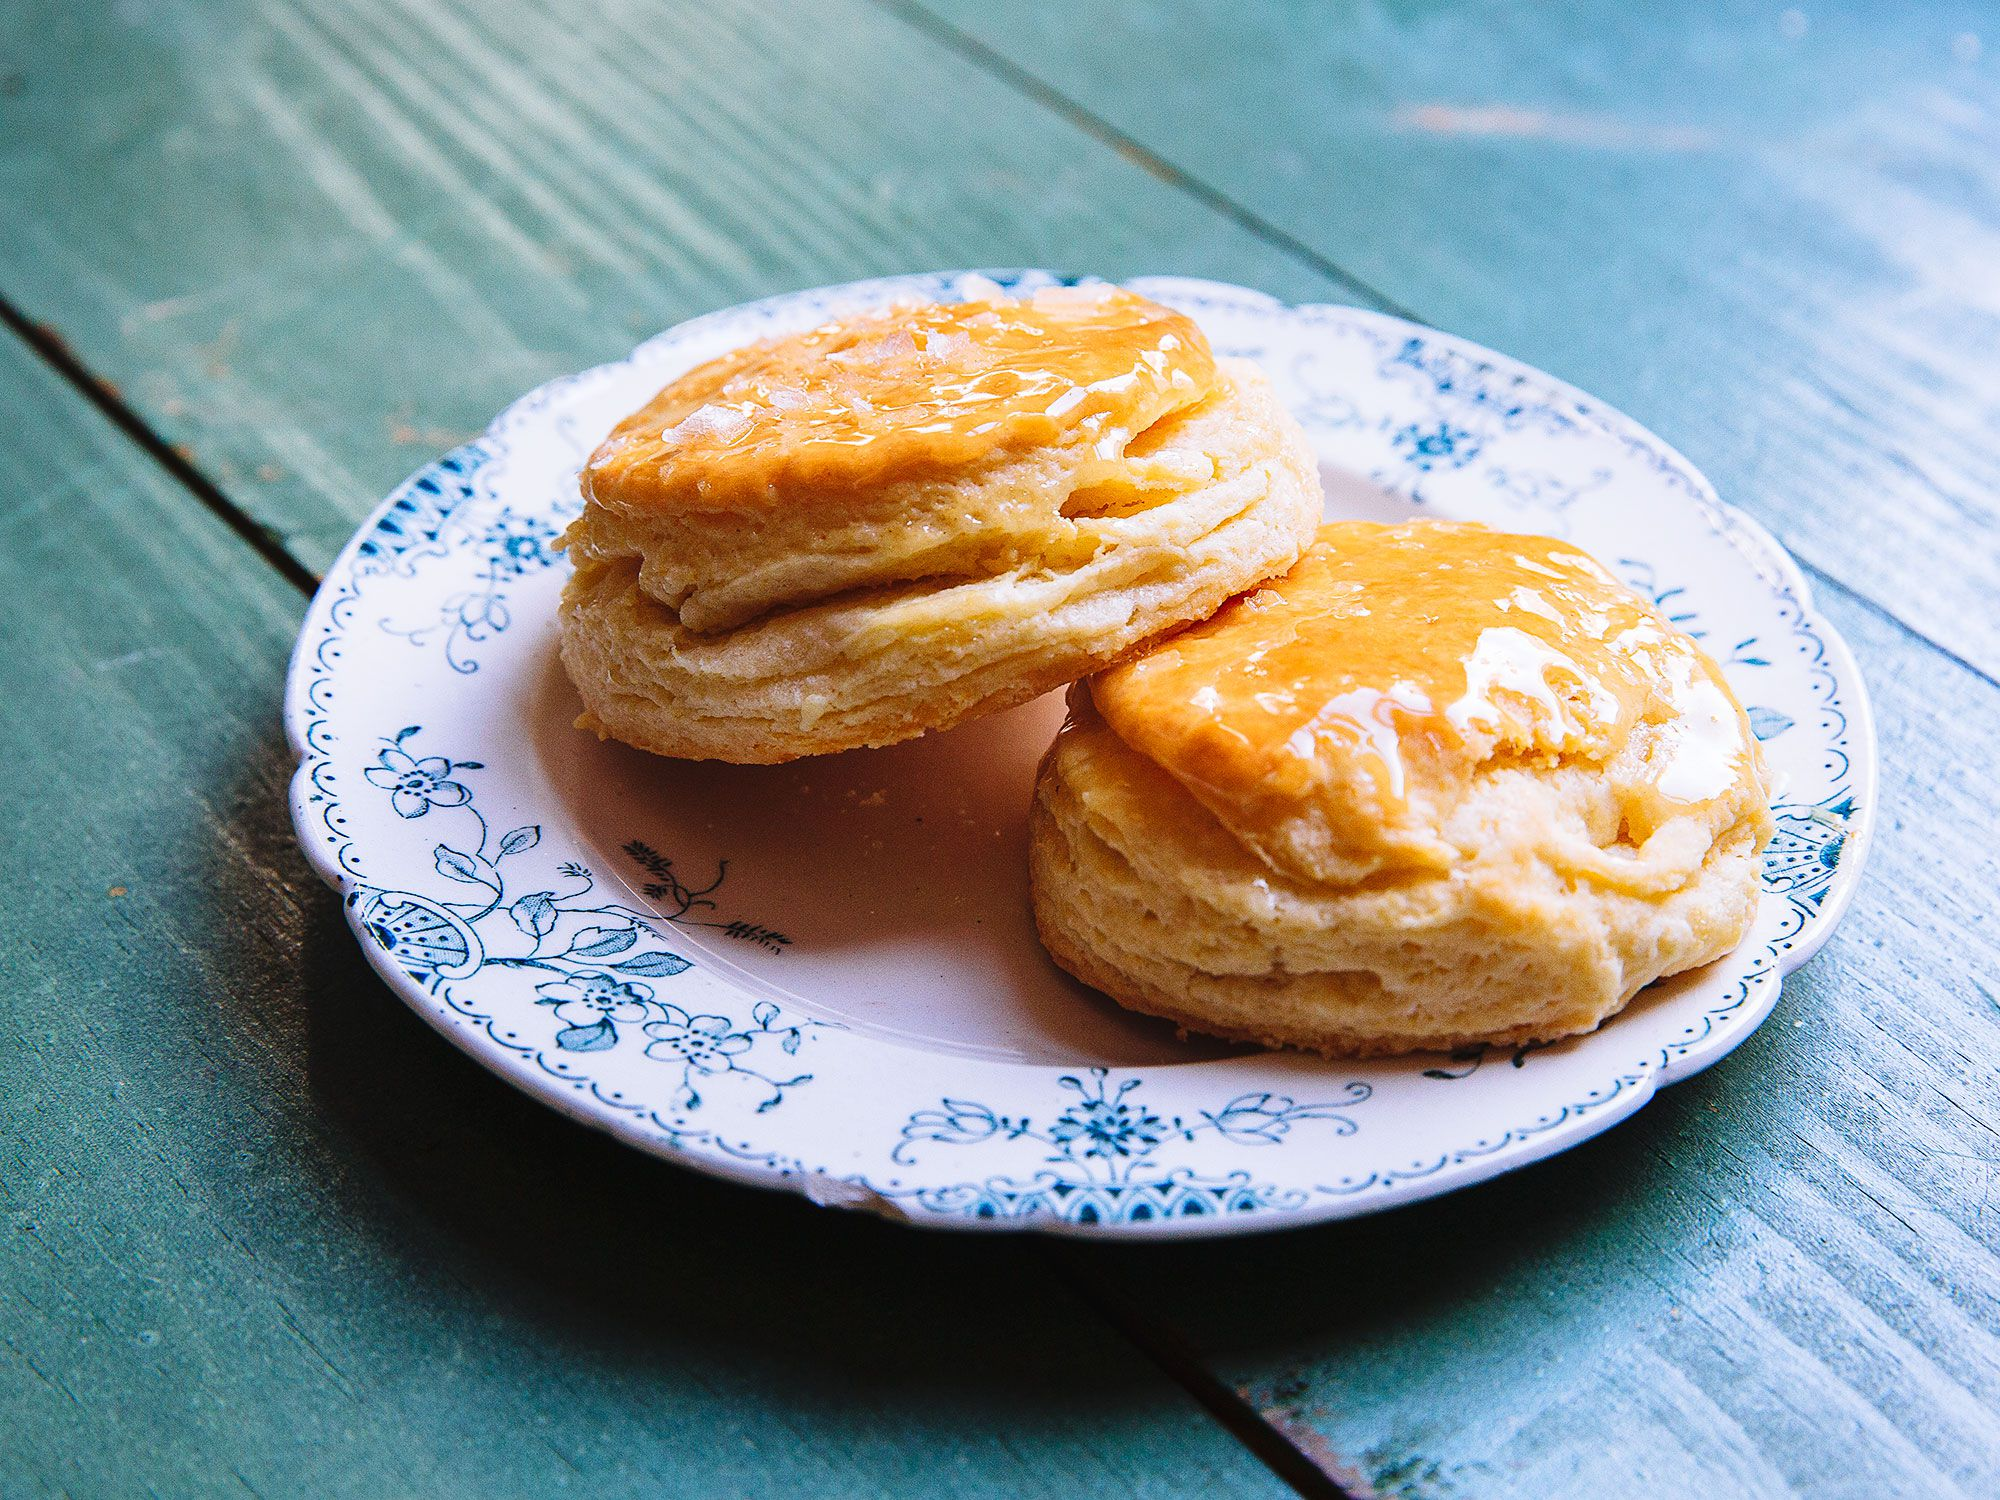 "This honey butter-topped biscuit recipe, from Jean-Paul Bourgeois, executive chef at Blue Smoke in New York City, earned first prize in the 2017 Charleston Food & Wine Festival's Battle of the Biscuits. High-quality dairy—and high-fat dairy—are two of chef Bourgeois' tricks to making them extra-special. Look for either high-fat buttermilk or a higher fat, European-style butter, which make for a more delicate, flakier texture. Get the recipe for <a href=""https://www.saveur.com/flaky-honey-butter-biscuit-recipe/"">Super-Flaky Buttermilk Biscuits With Honey Butter</a>"